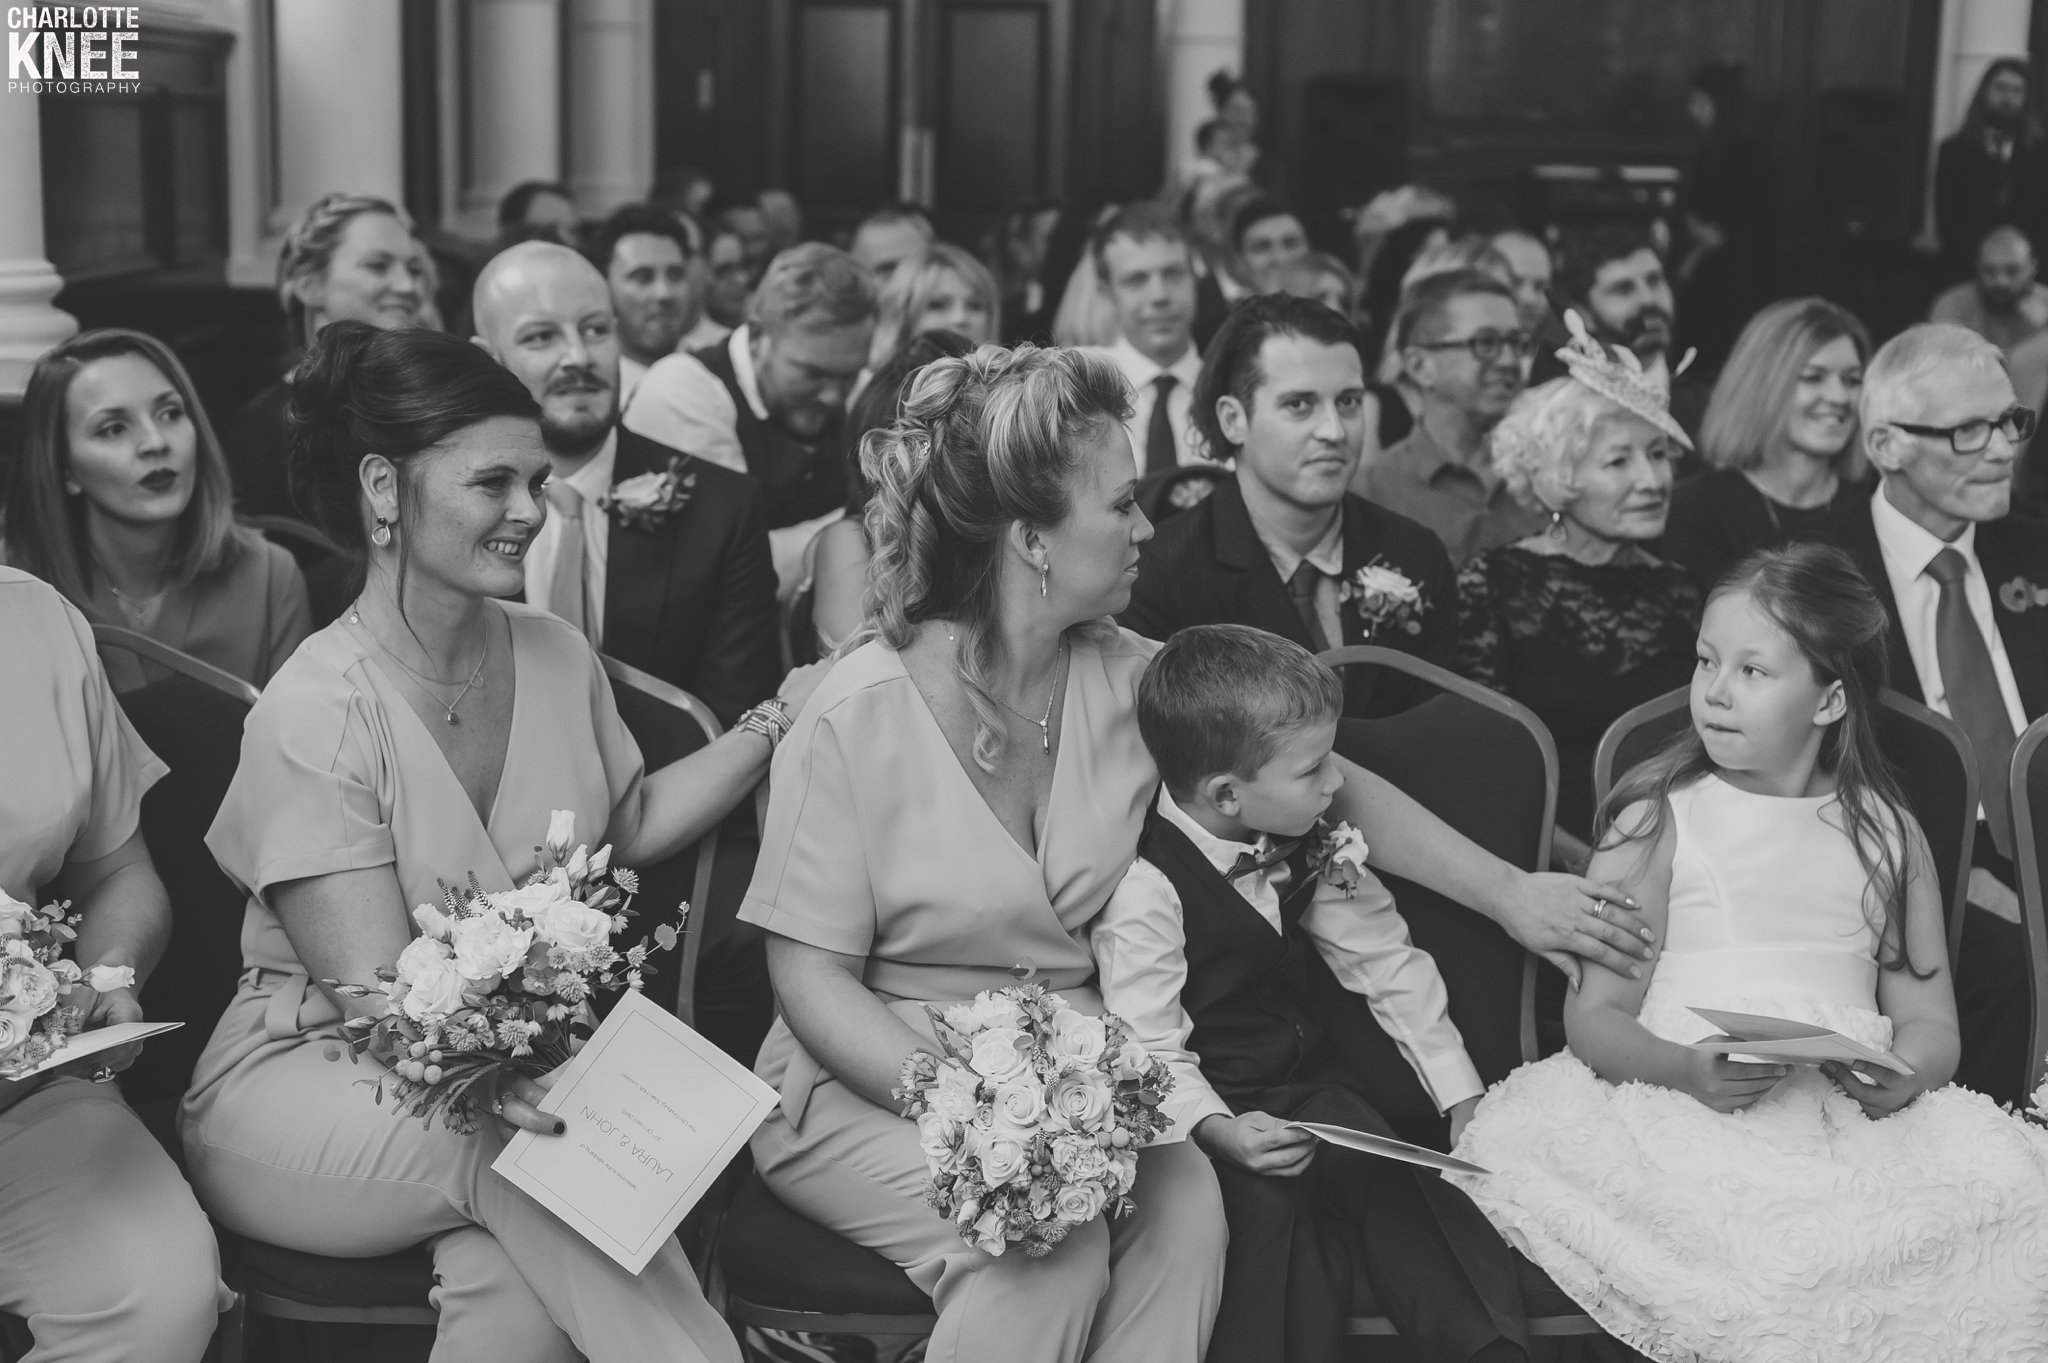 London Wedding Finsbury Town Hall Copyright Charlotte Knee Photography_0071.jpg